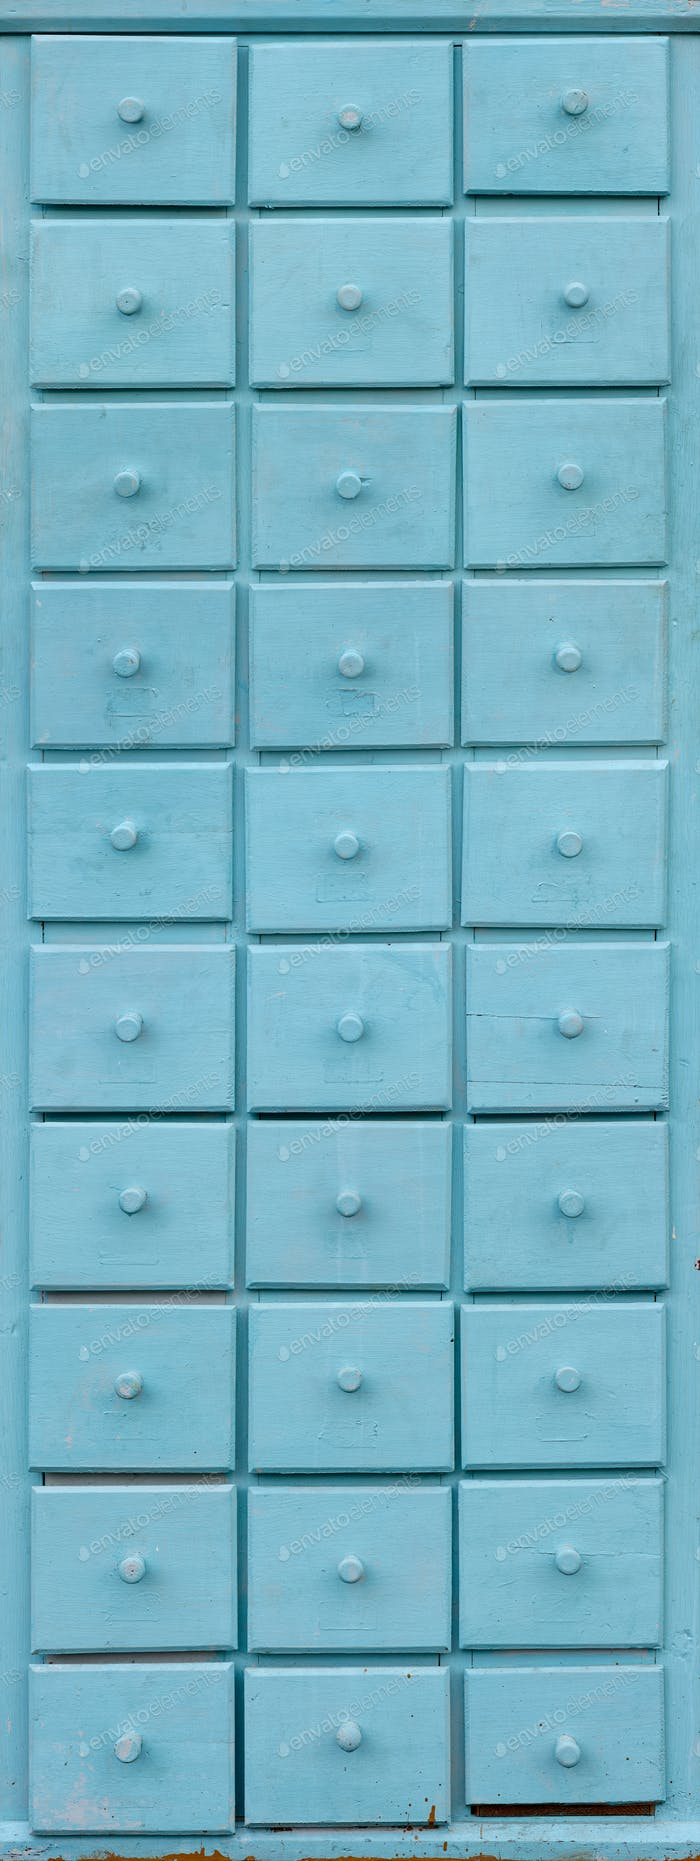 Blue wooden closet with drawers